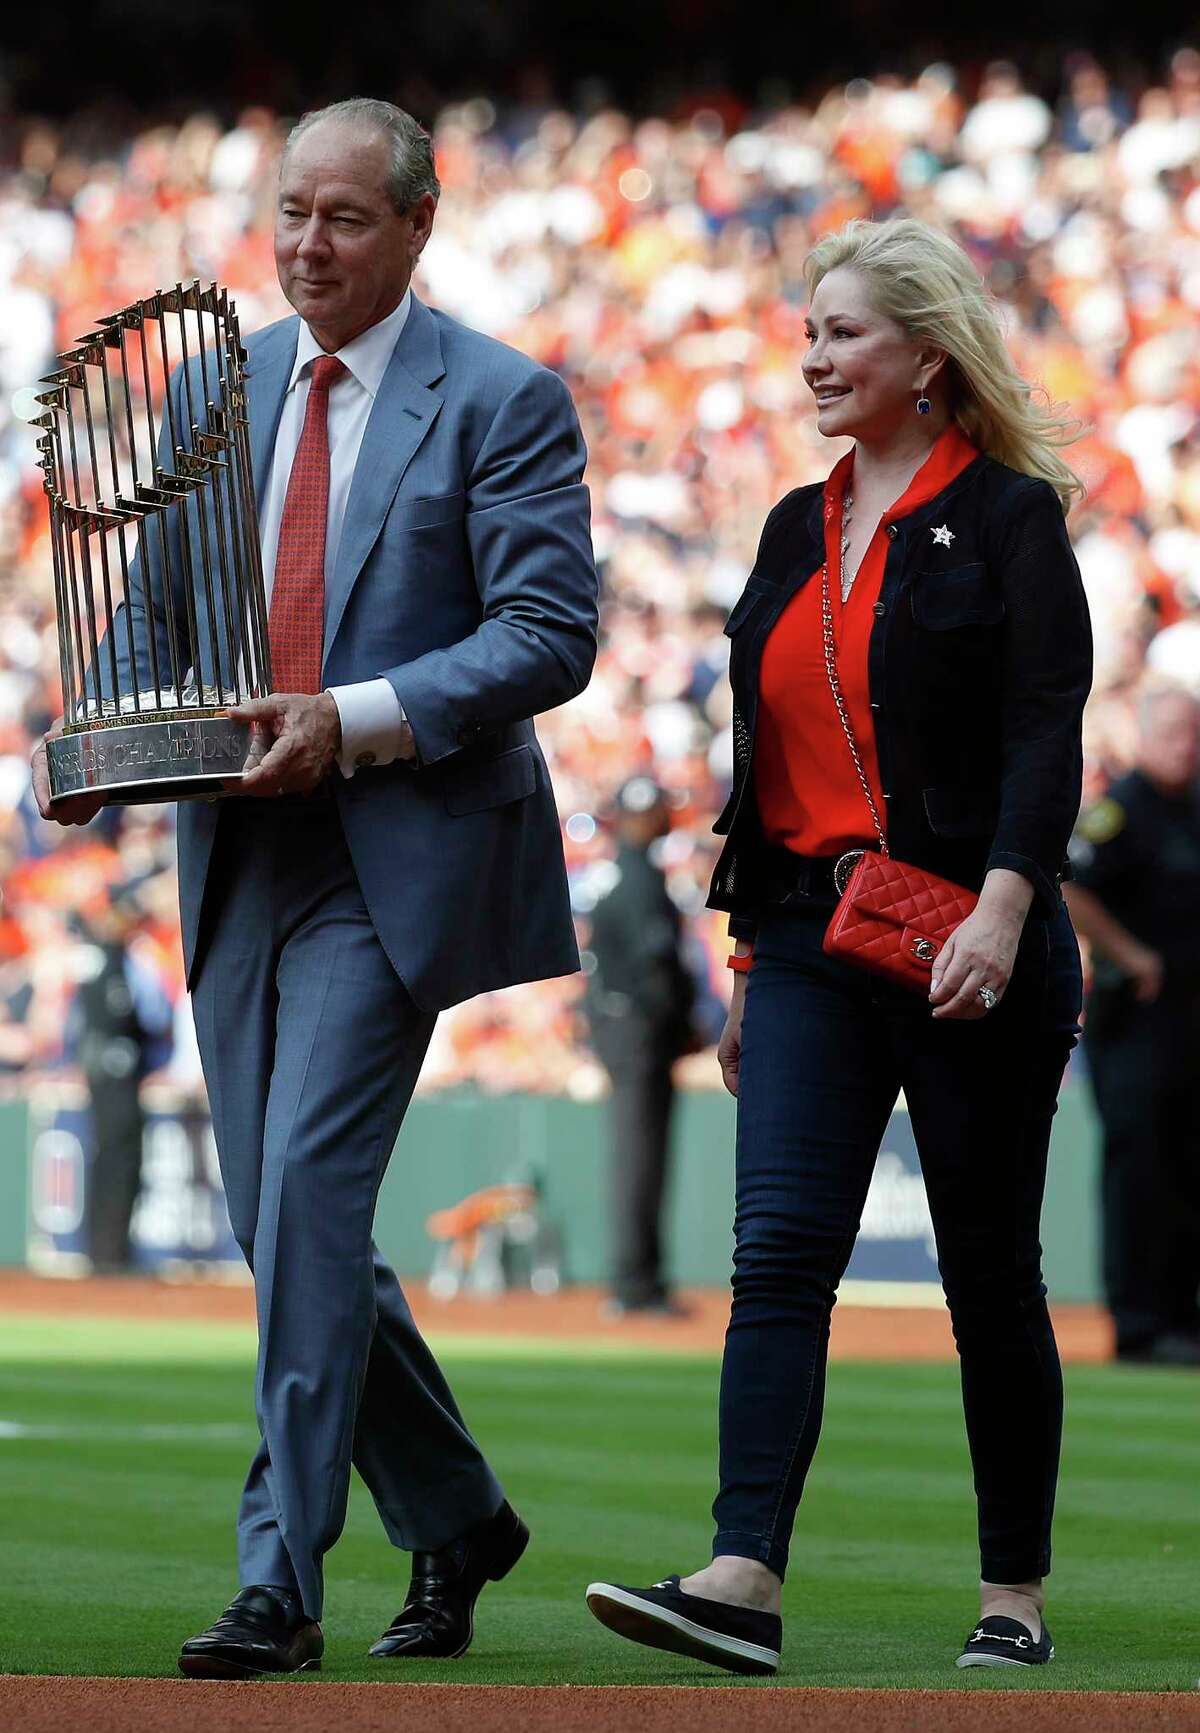 Houston Astros owner Jim Crane and hius wife walk out to the field with the World Series trophy during the pre-game ceremony before the start of the home opener during an MLB baseball game at Minute Maid Park, Monday, April 2, 2018, in Houston.